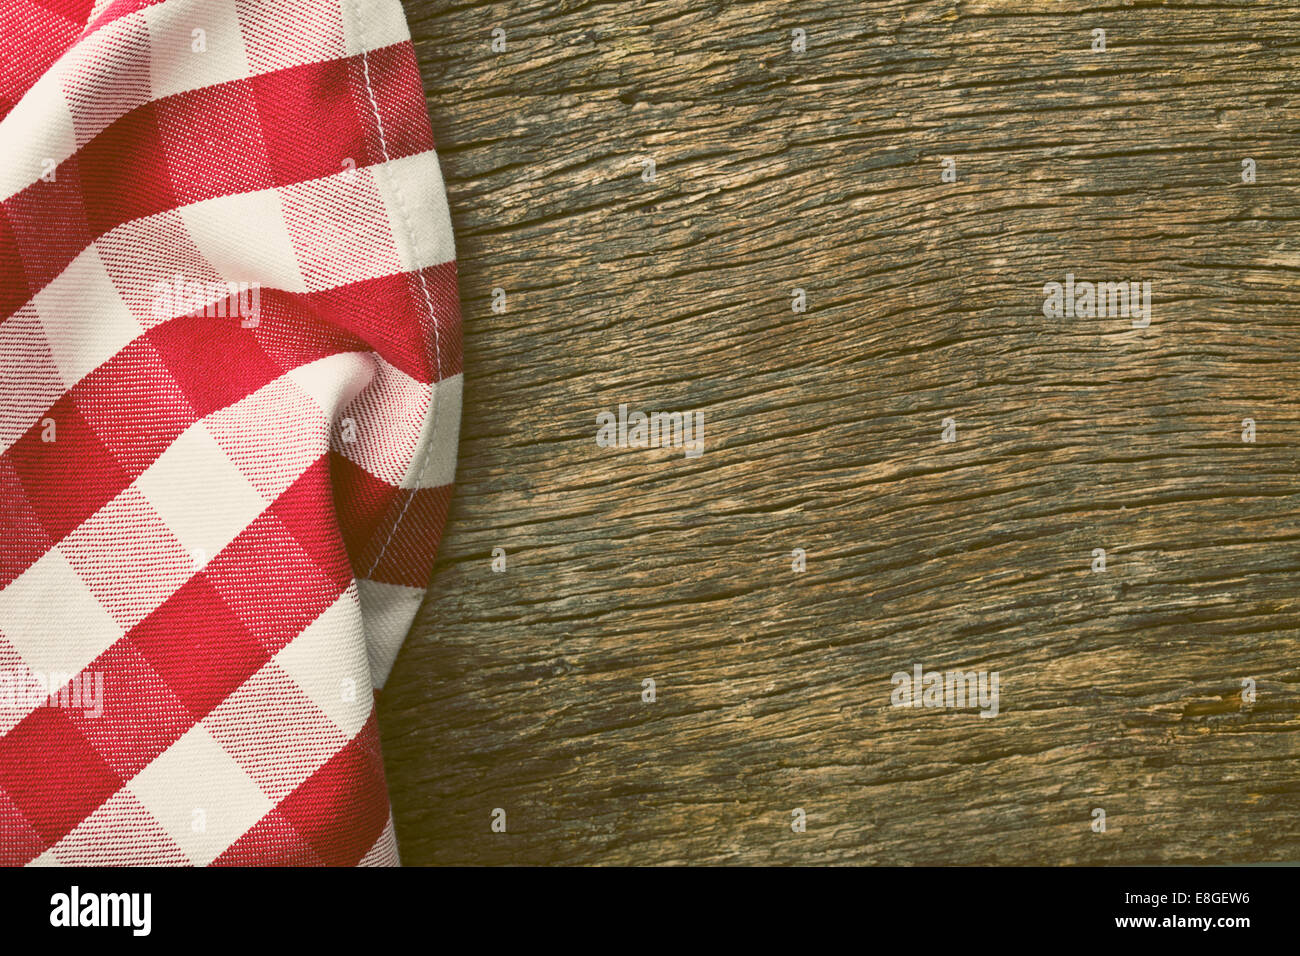 the red tablecloth over old wooden table - Stock Image